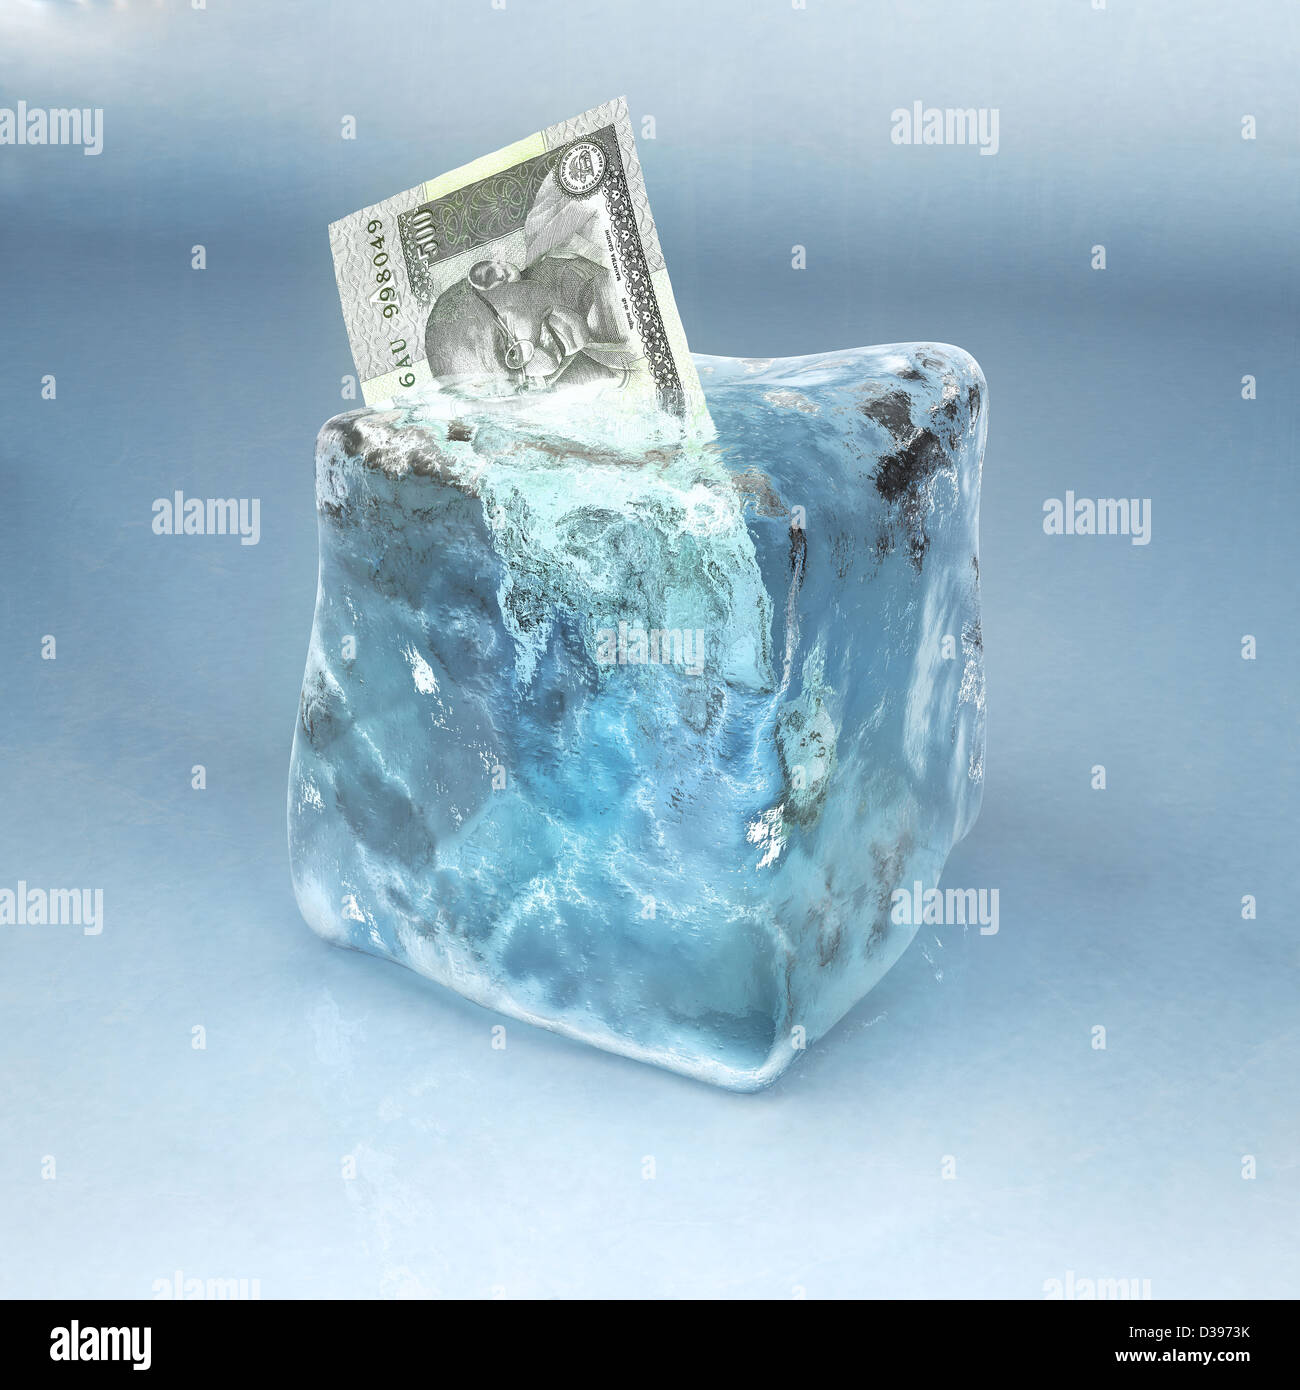 Conceptual Shot Of Indian Currency Frozen In Ice Cube Depicting Rendering Investment